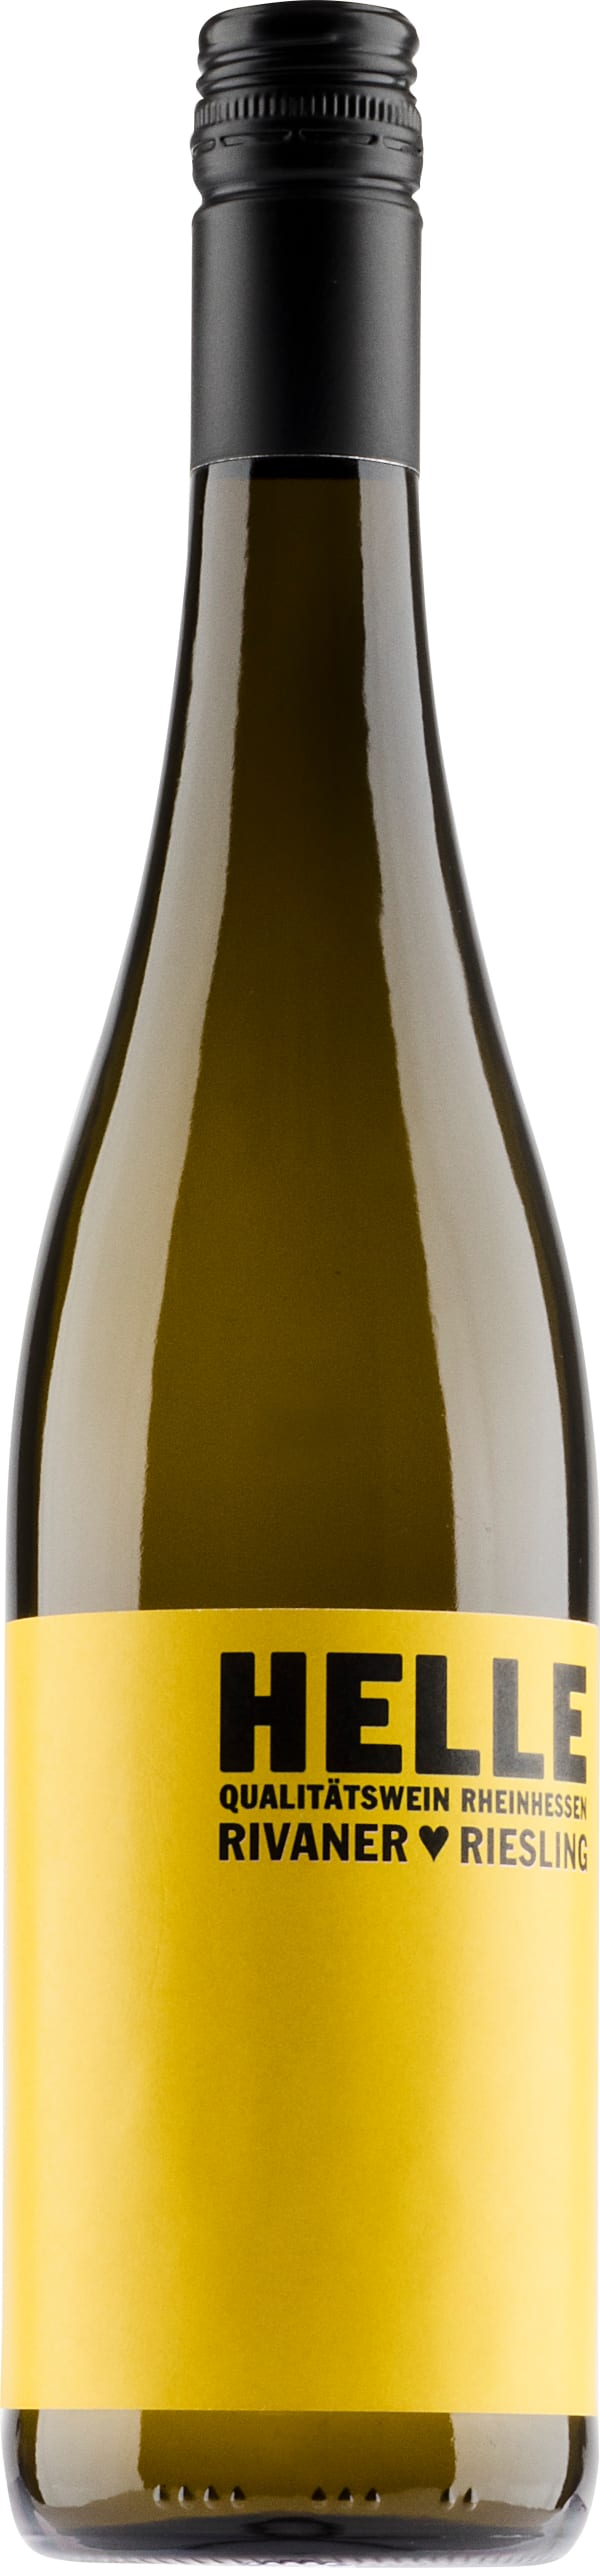 Helle Rivaner Riesling 2019